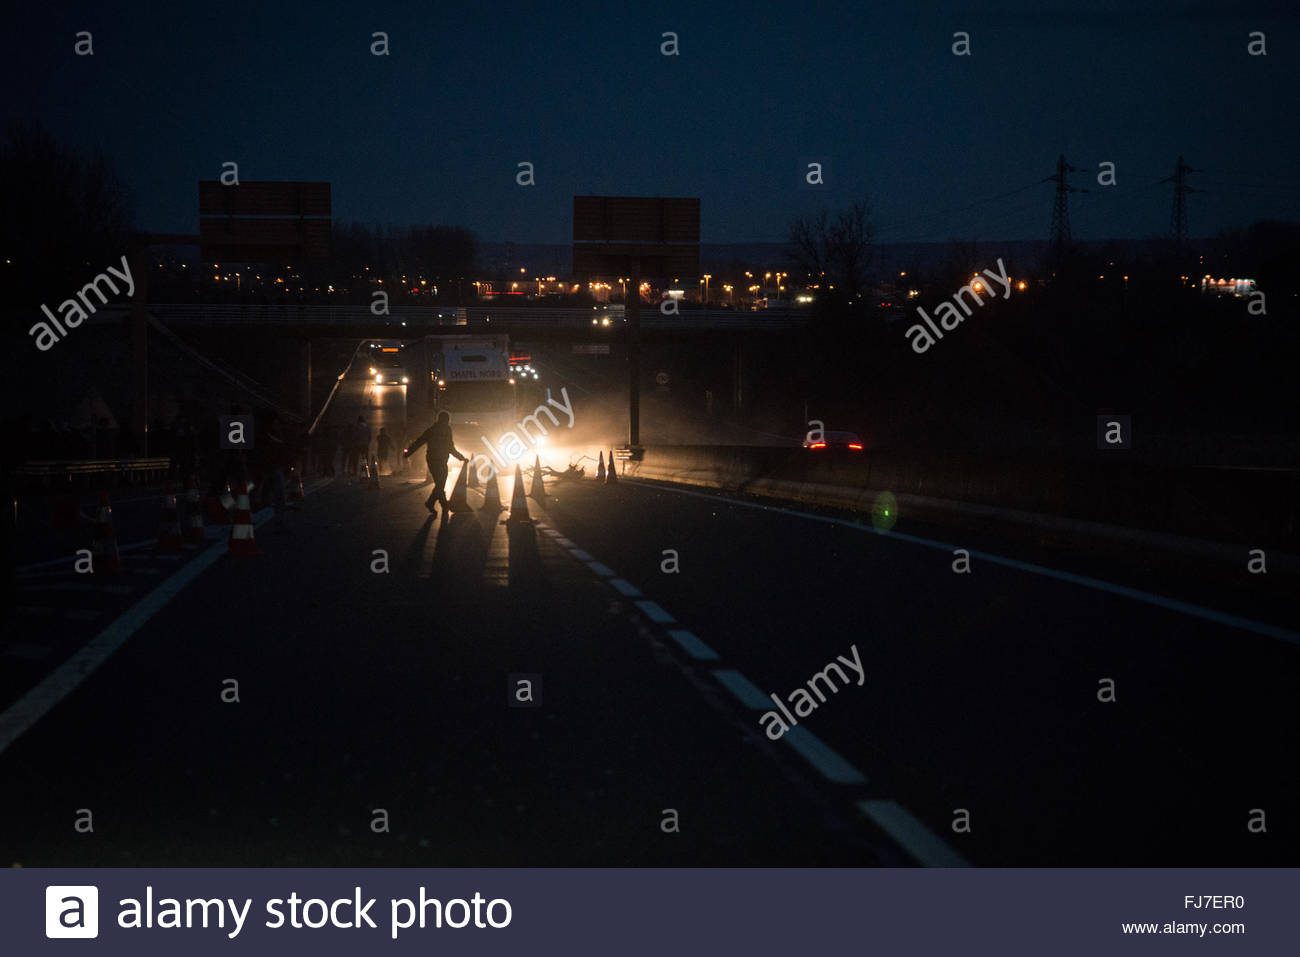 Calais, France. February 29th, 2016. Just-evicted refugees set fires in the street as authorities dismantle the - Stock Image